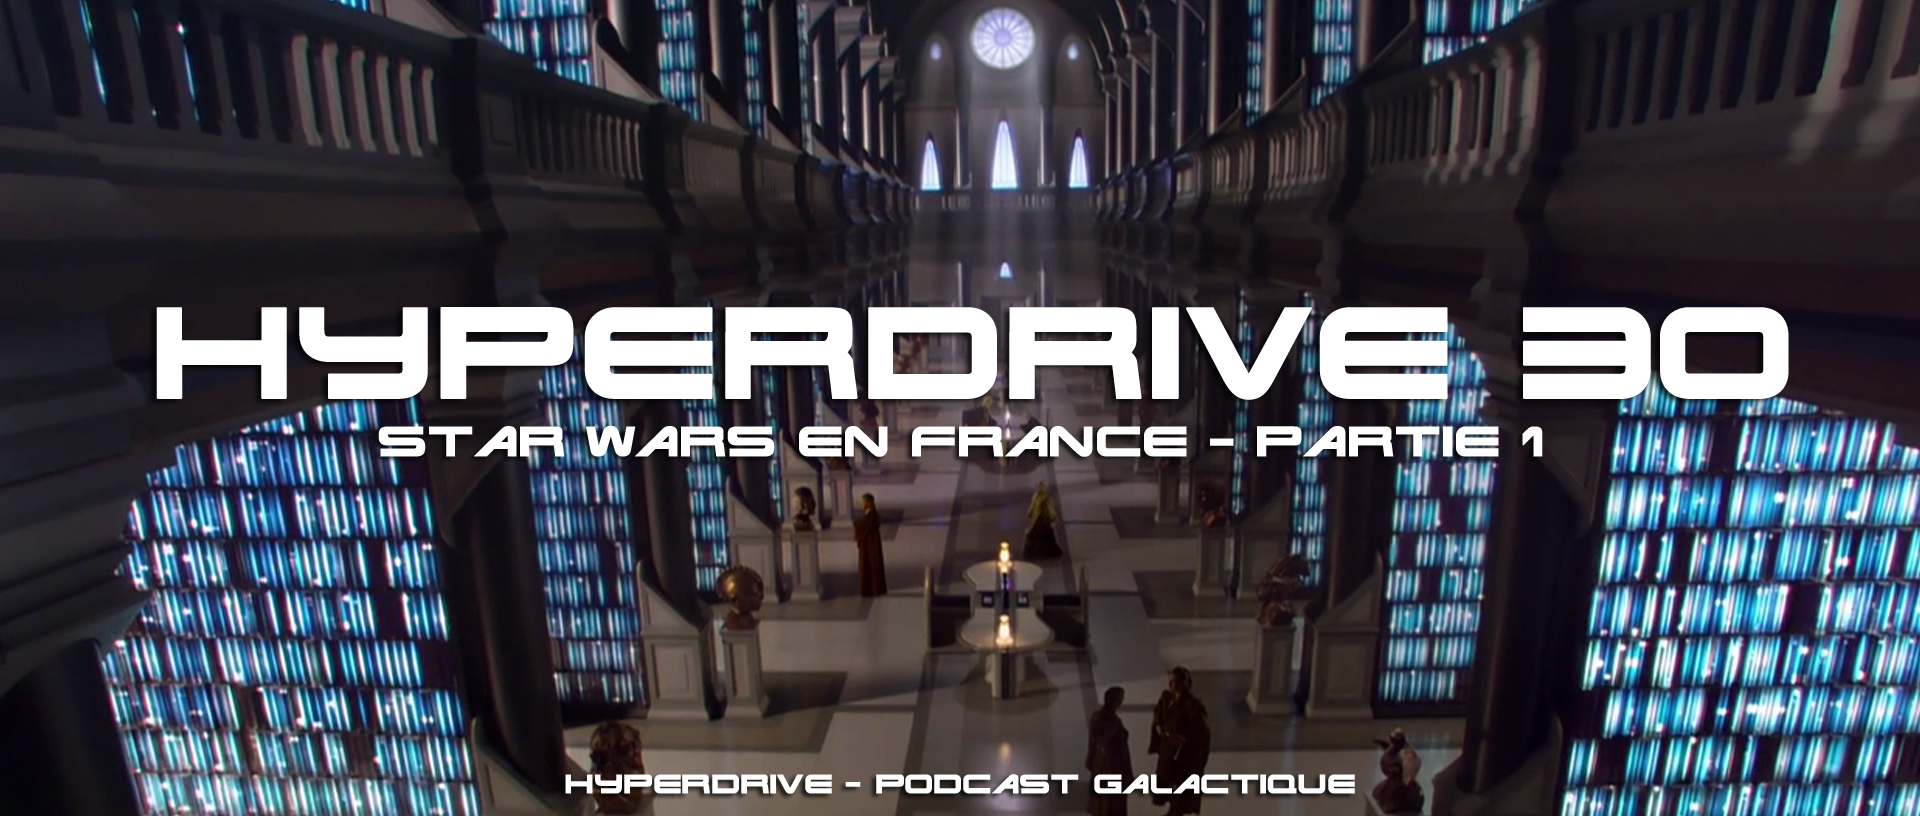 hyperdrive 30 - Star Wars en France partie 1 podcast